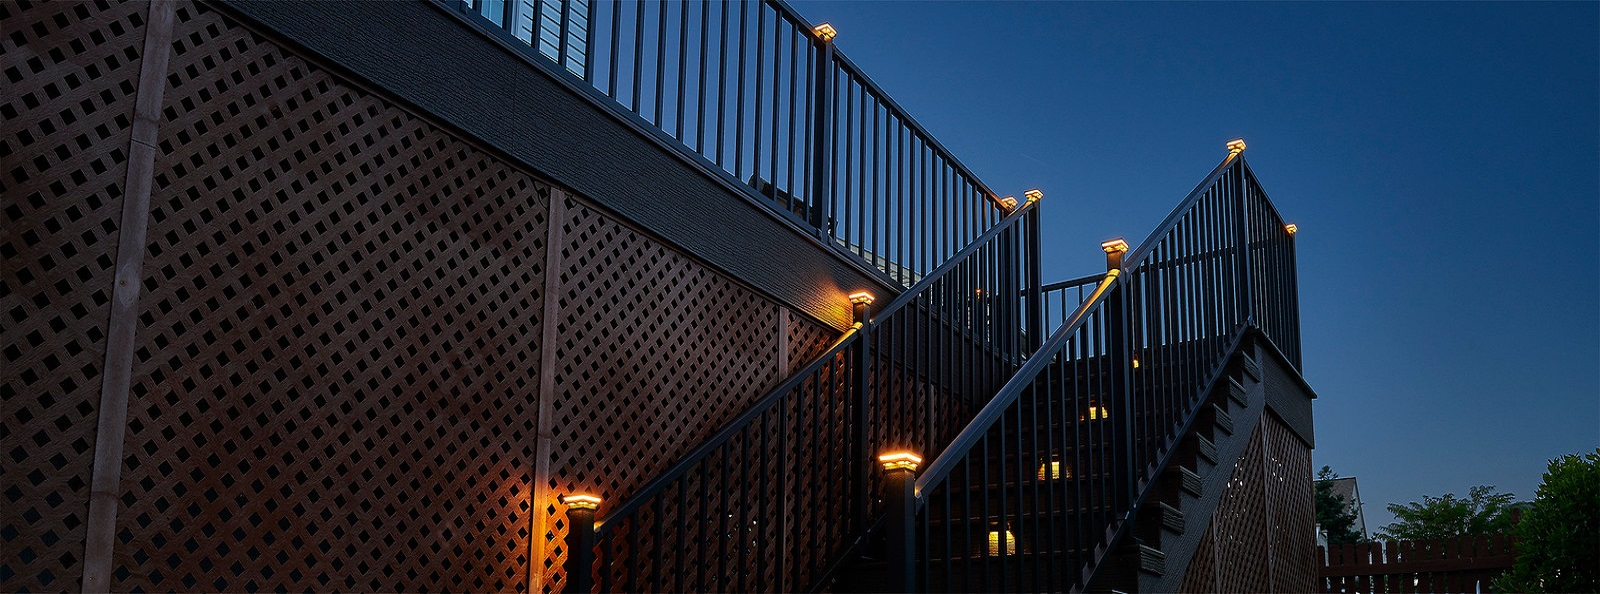 Wolf Outdoor Lighting For Decks and Railings